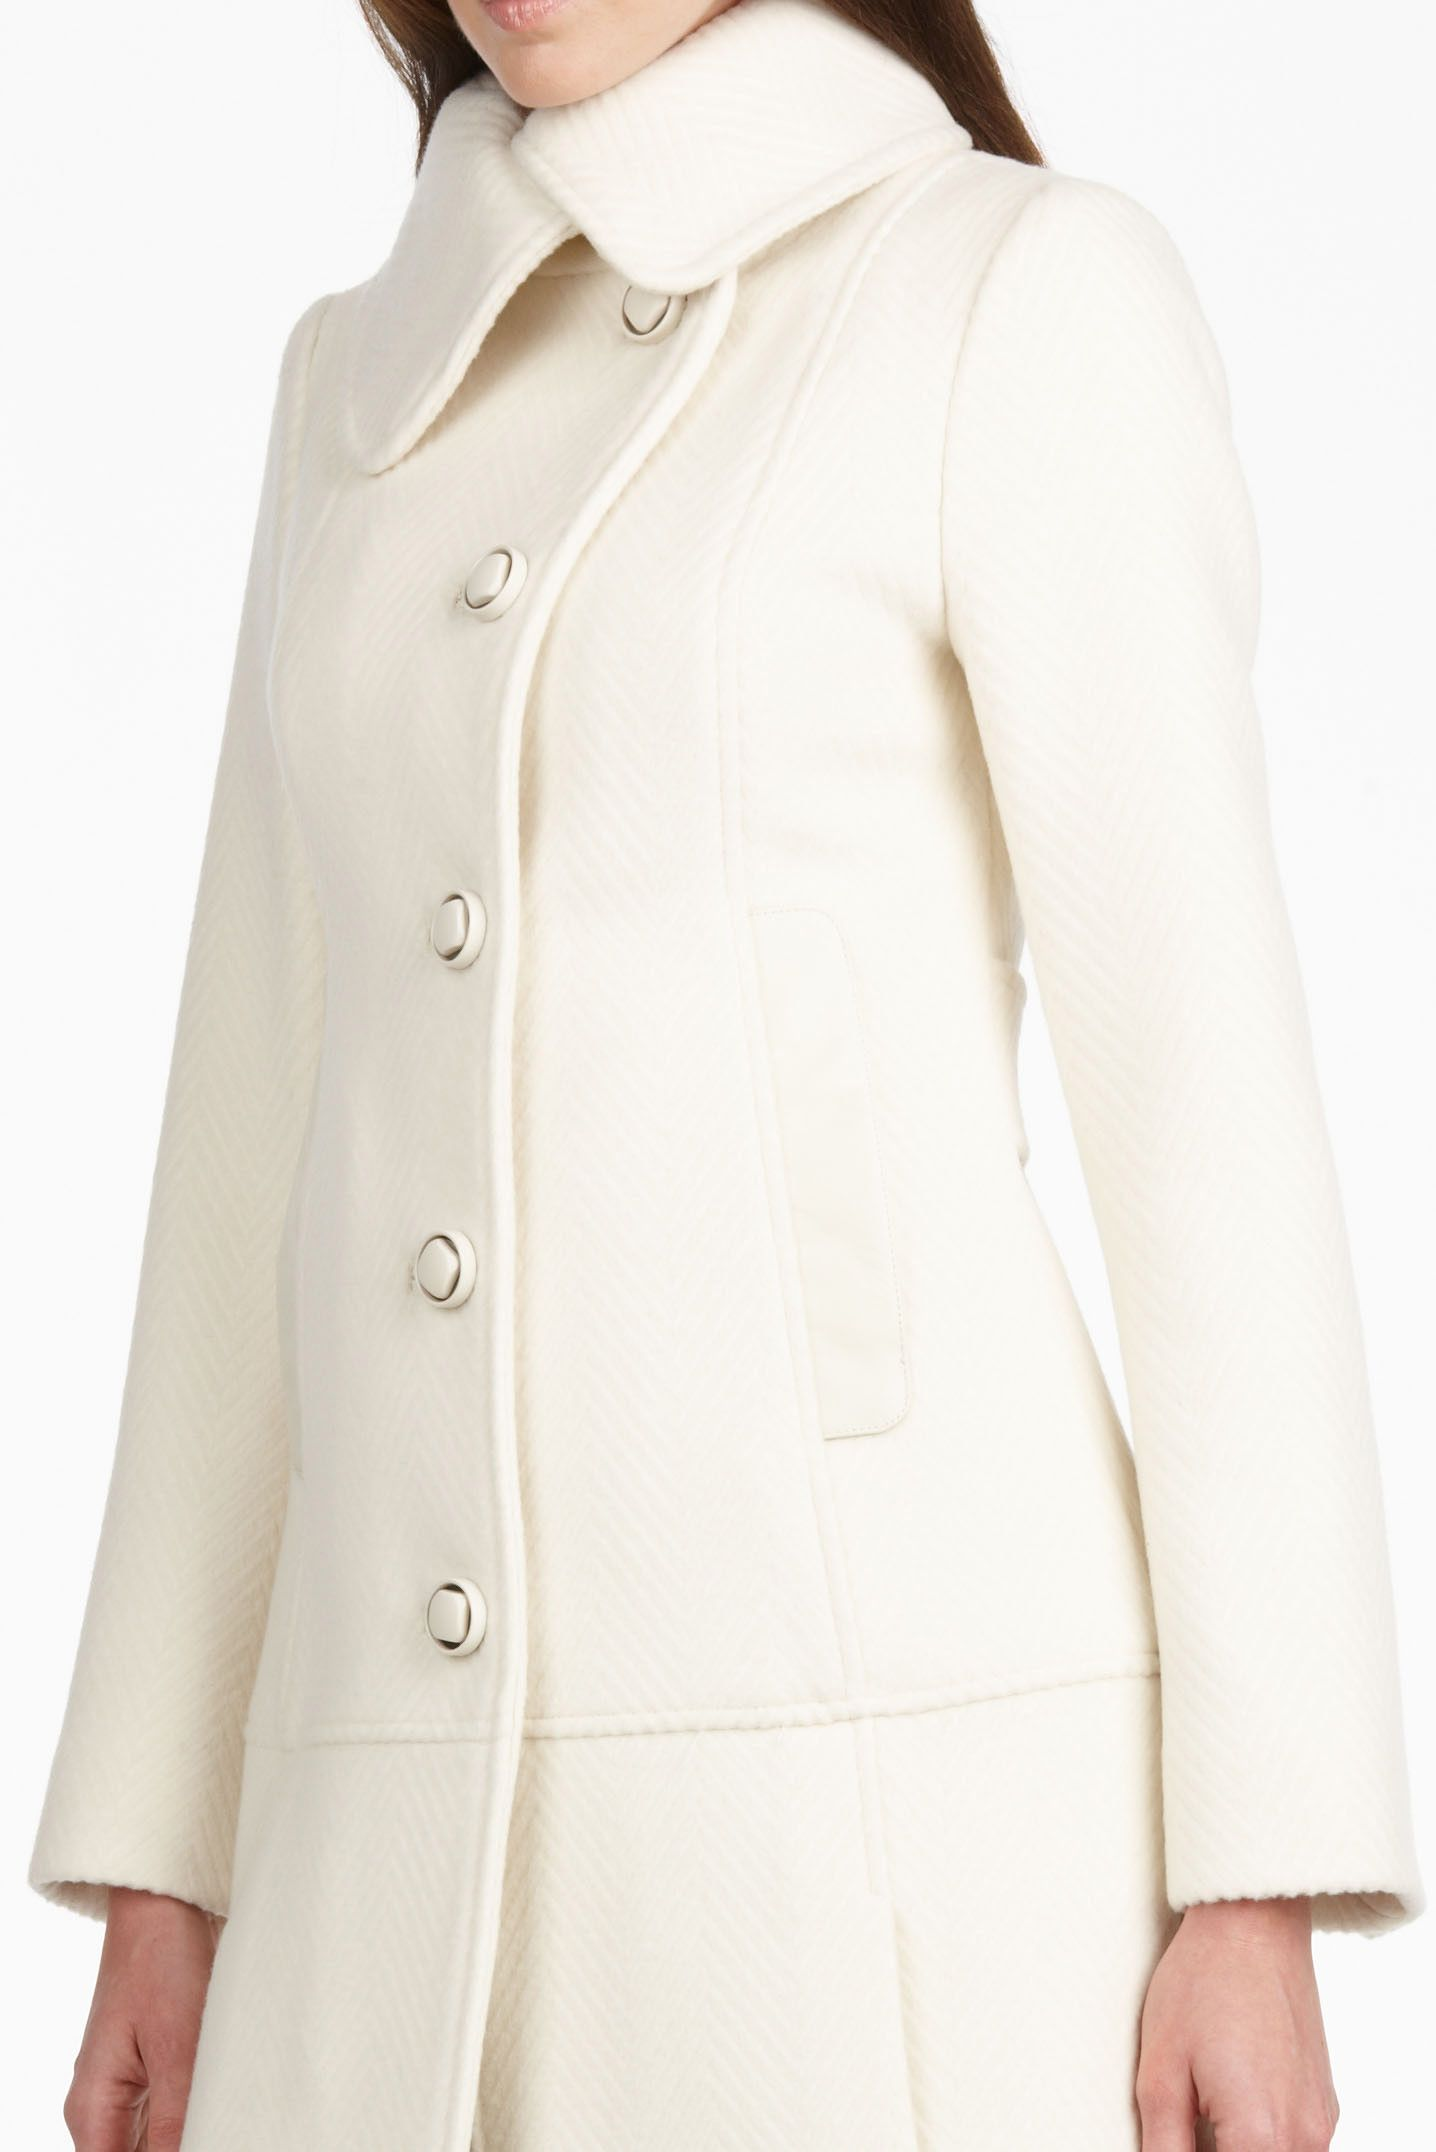 white womens winter coat | White Women's Winter Wool Coats ...